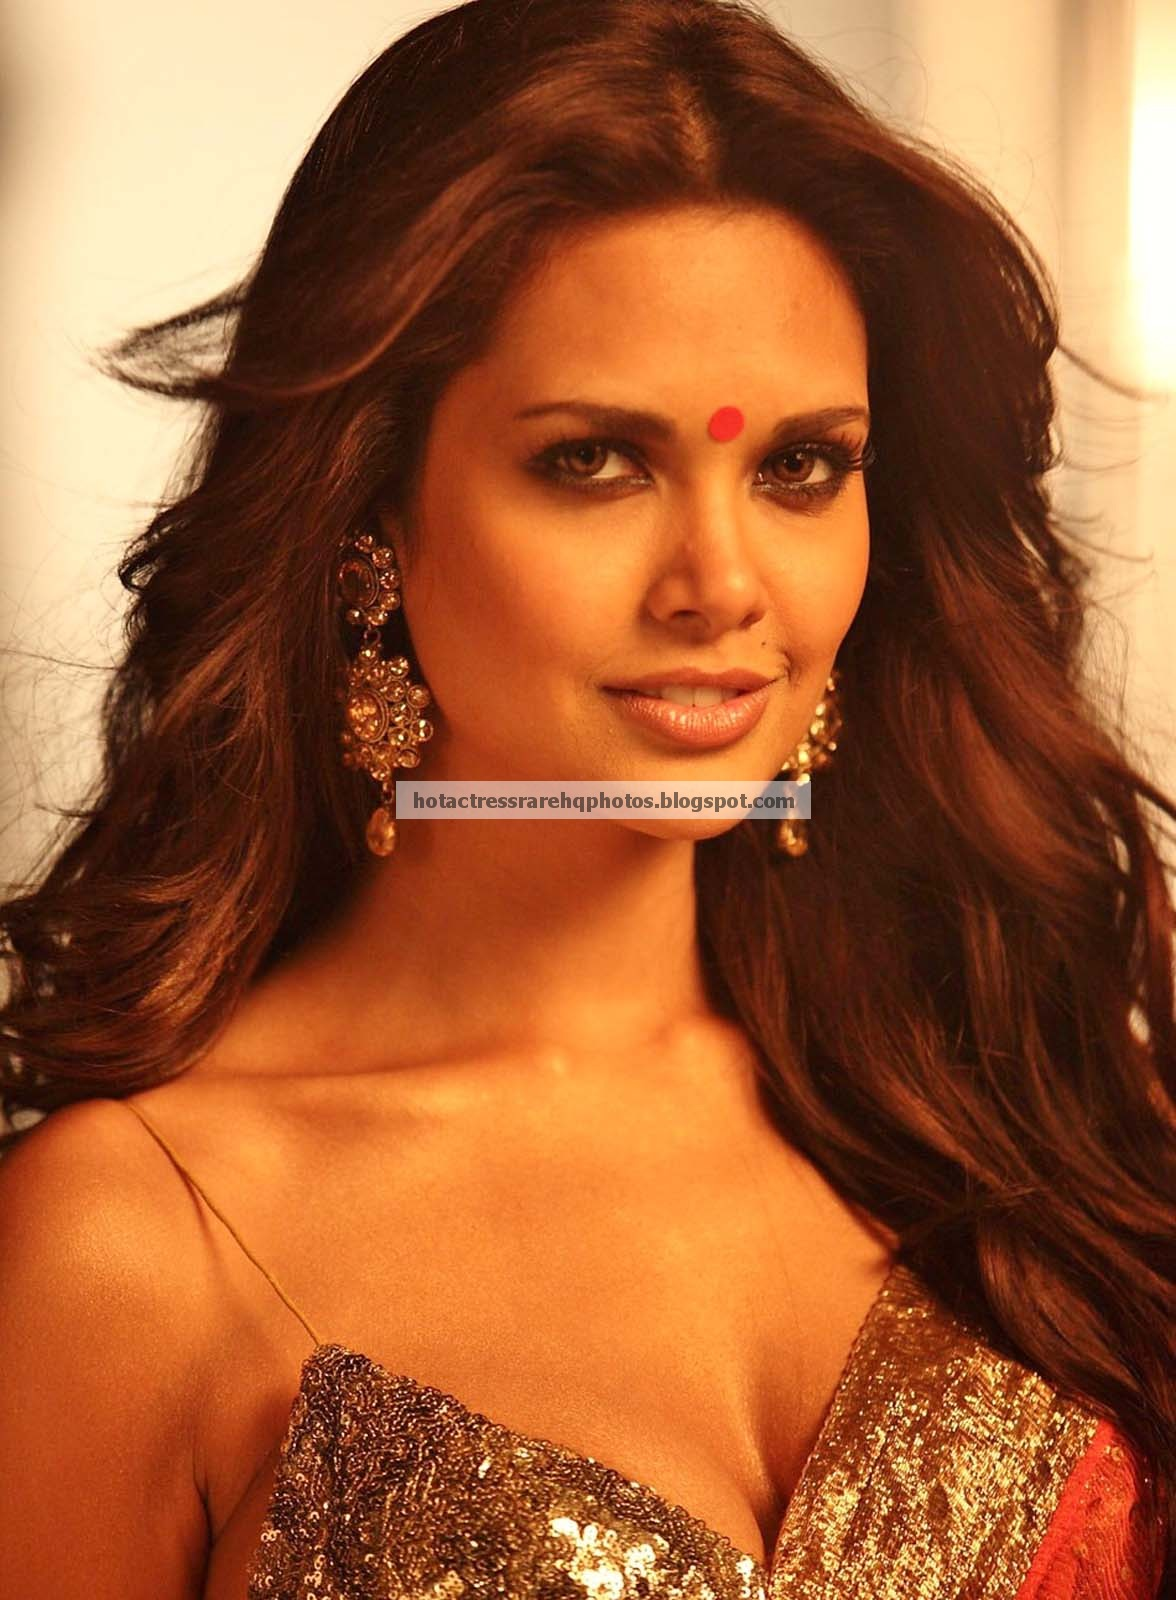 Hot indian actress rare hq photos bollywood actress esha gupta spicy